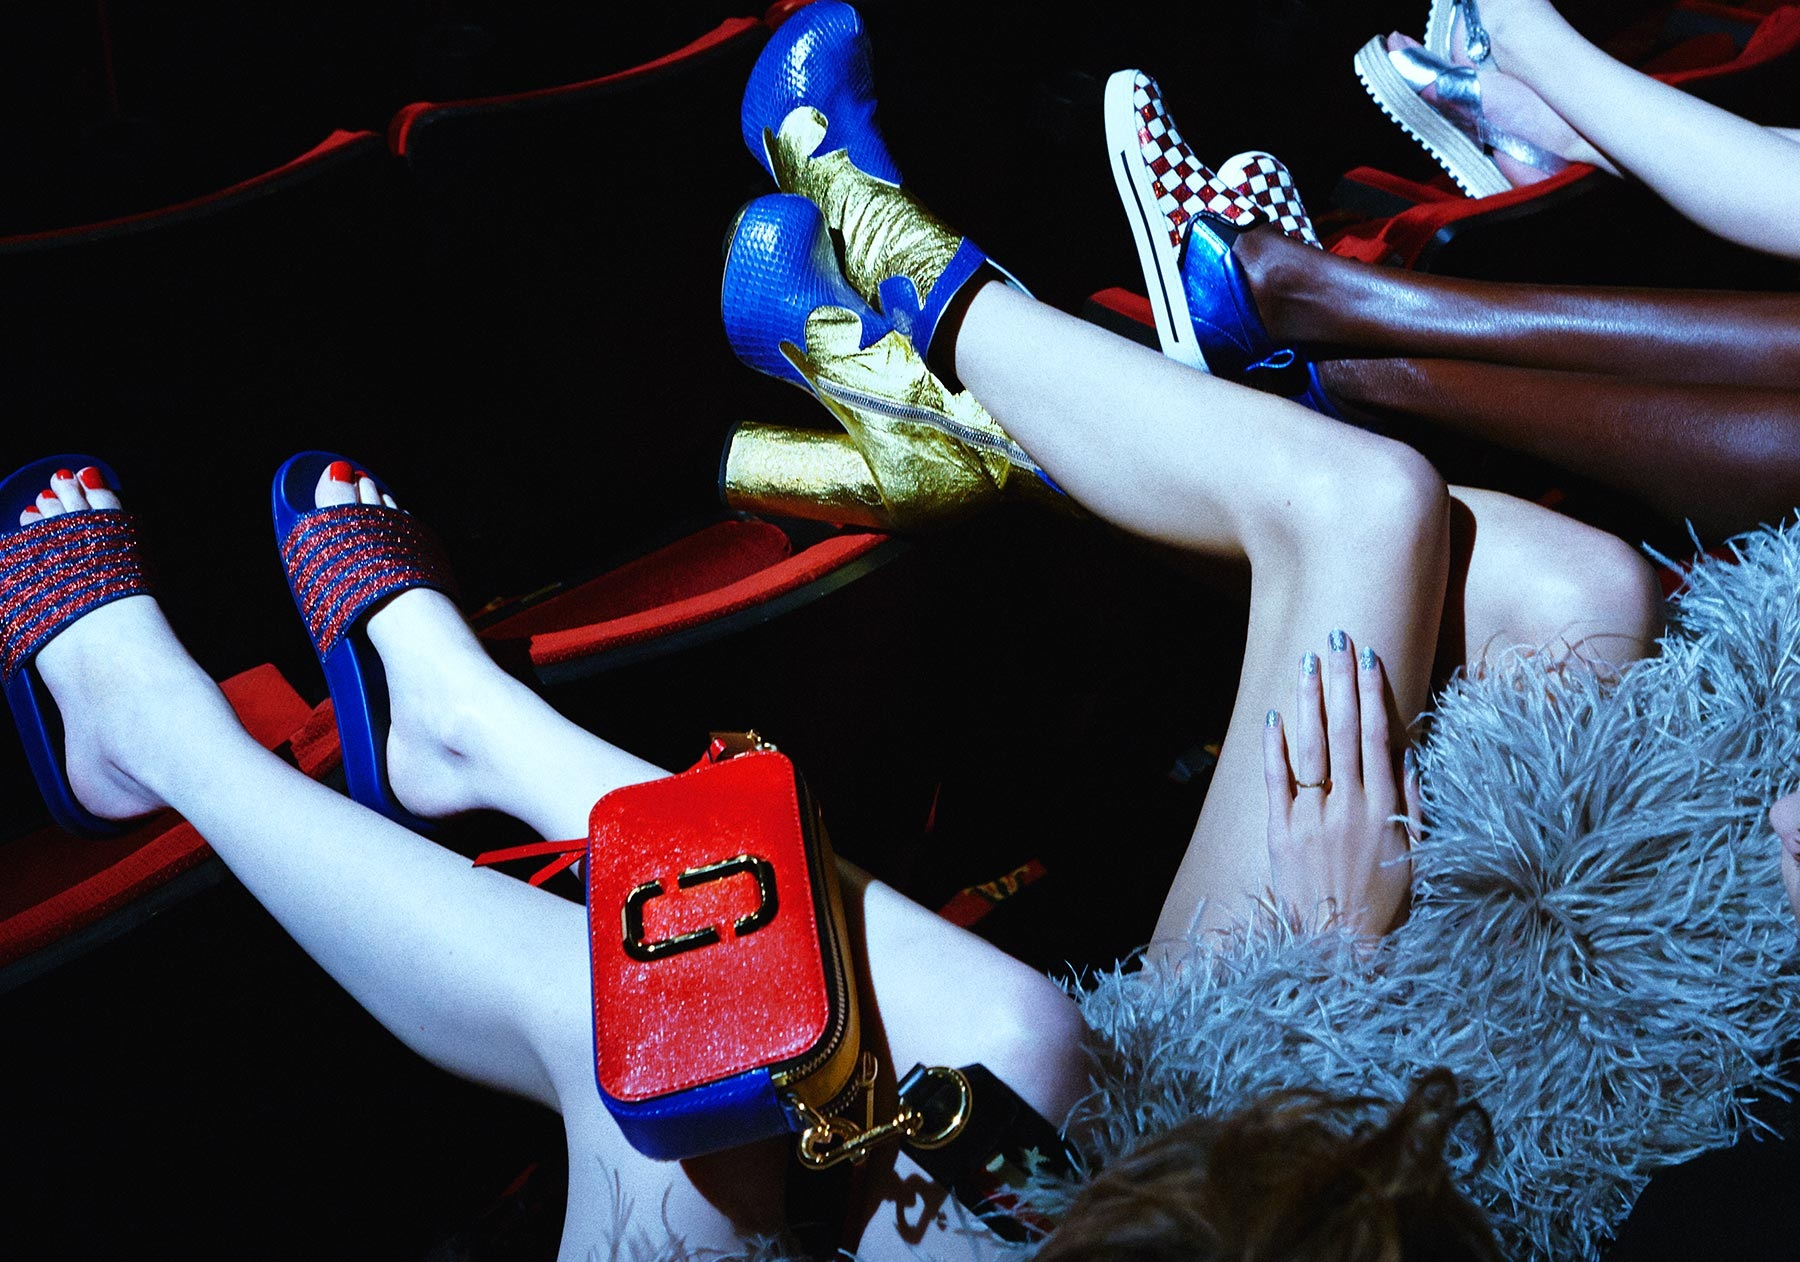 Sandals, Boots and Sneakers - Marc Jacobs